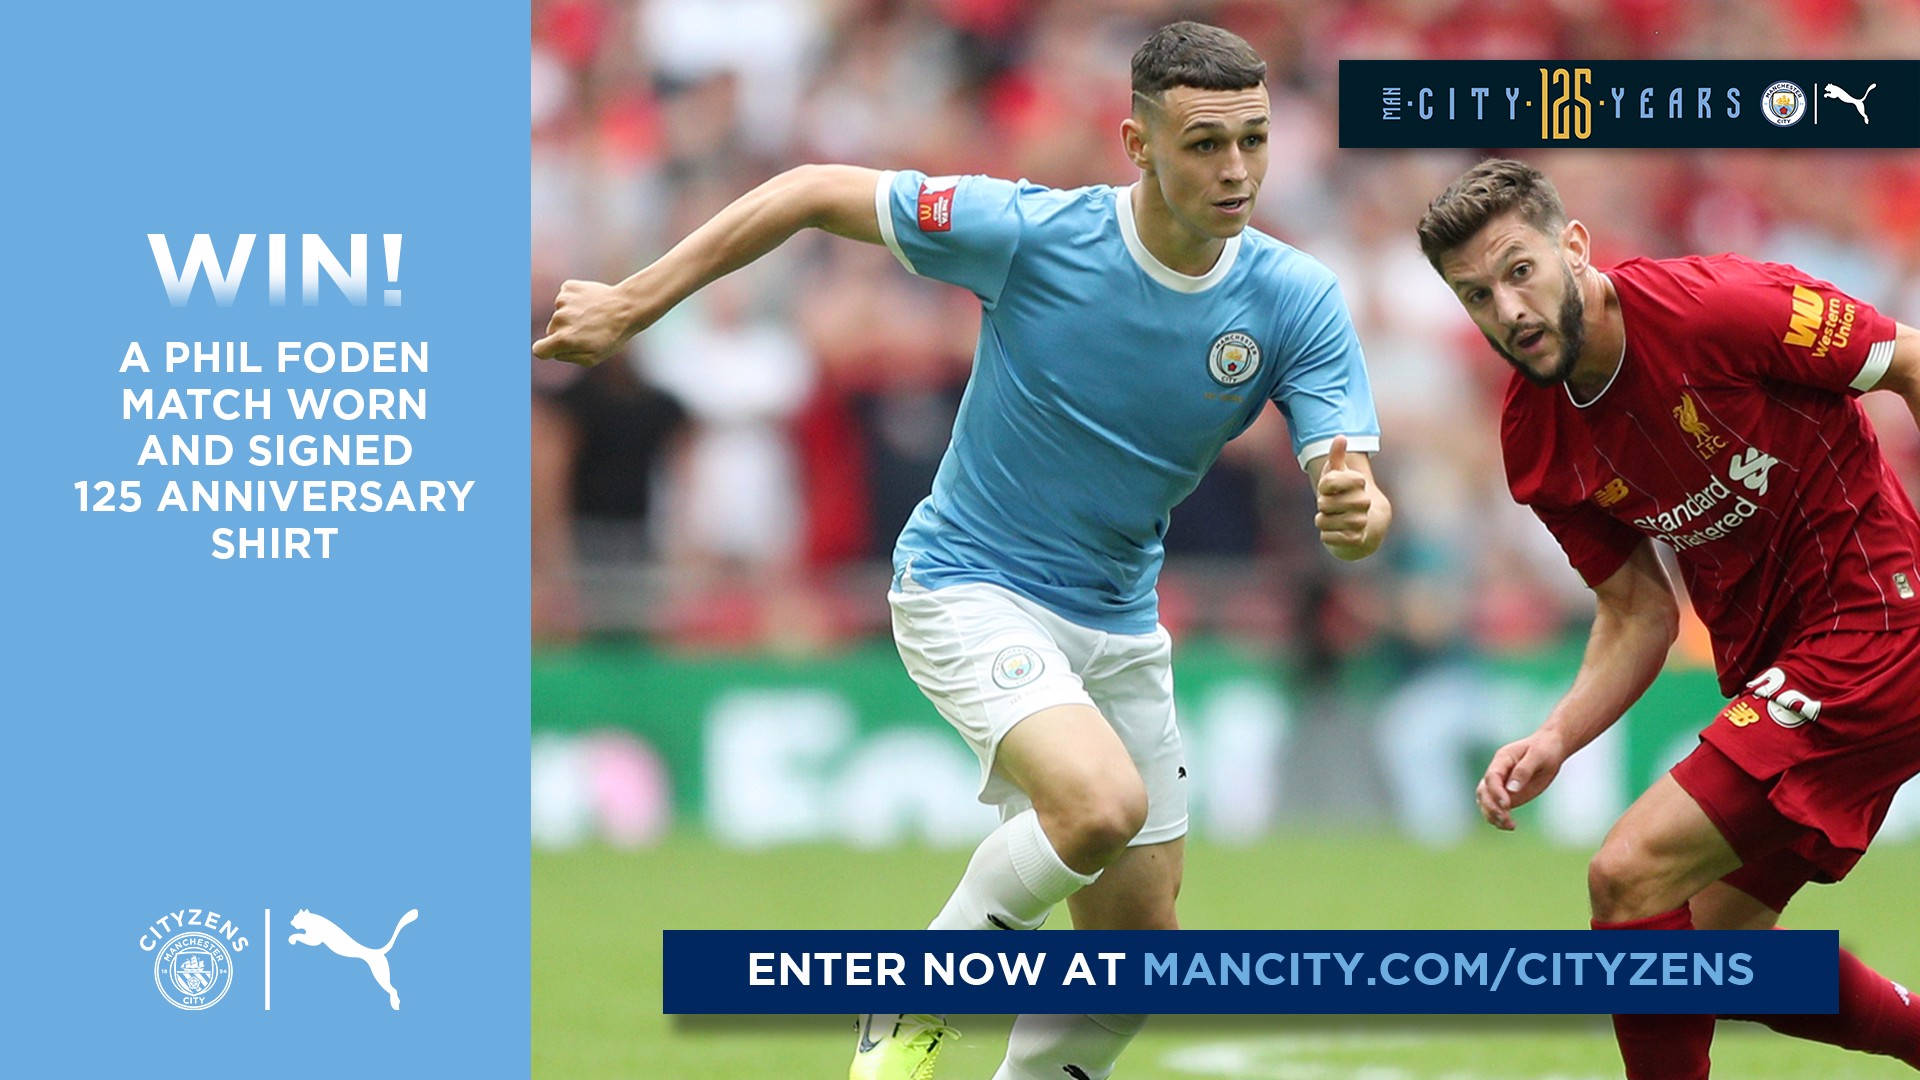 Manchester City FC | Official Website, Latest News, Players